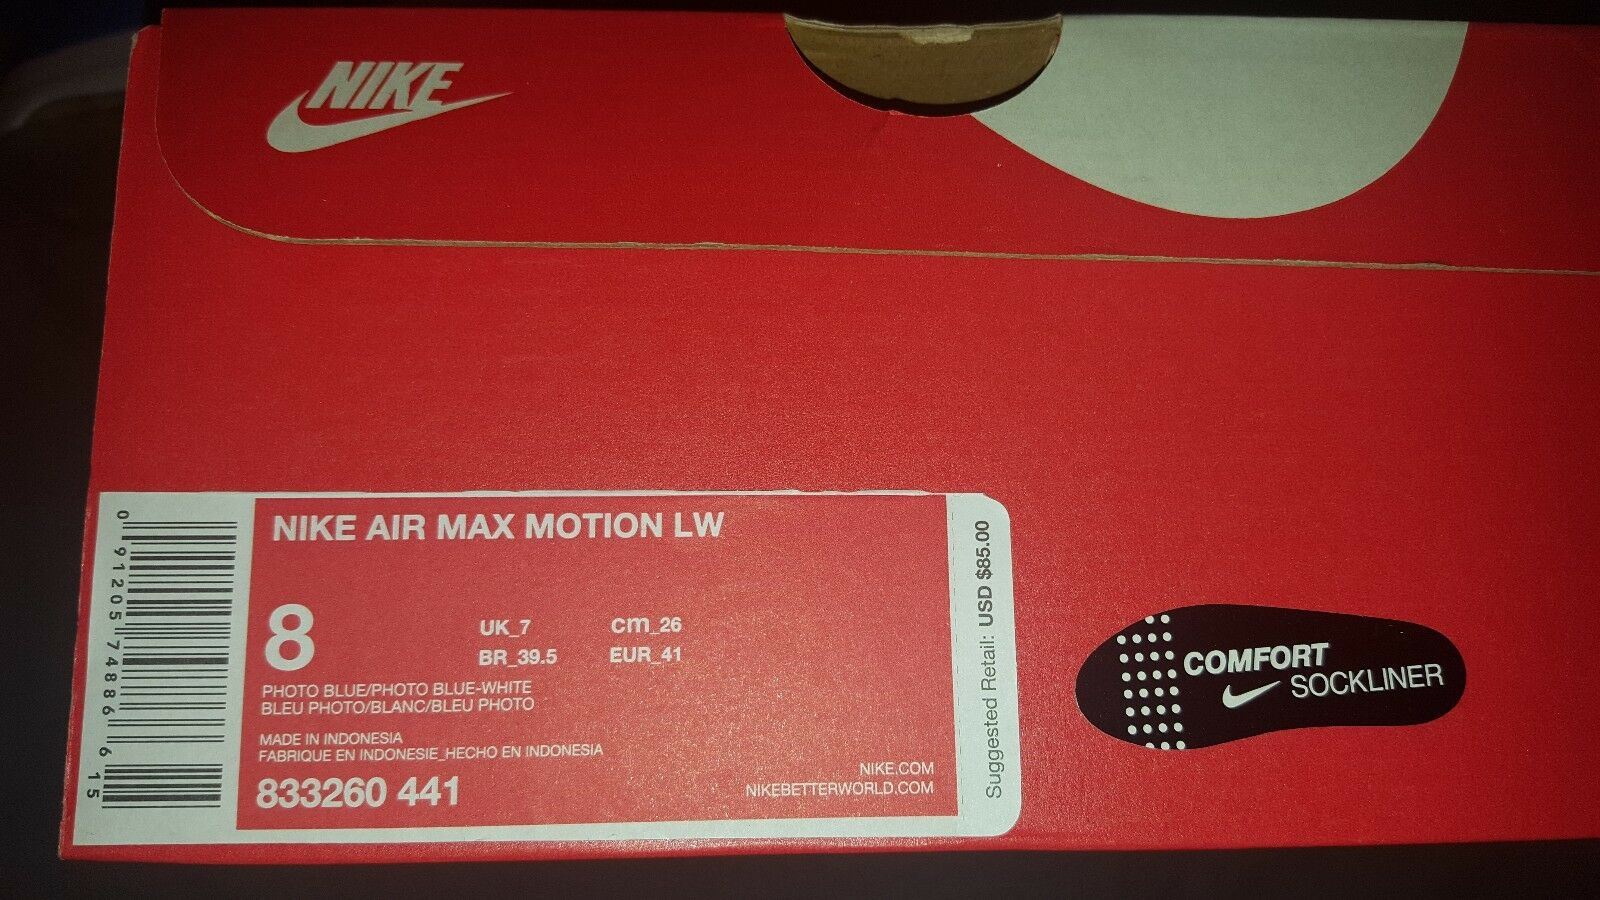 NIKE AIR MAX MOTION LW MENS SHOES PHOTO PHOTO PHOTO blueE WHITE 833260 441 US 8 NEW IN BOX df5e65